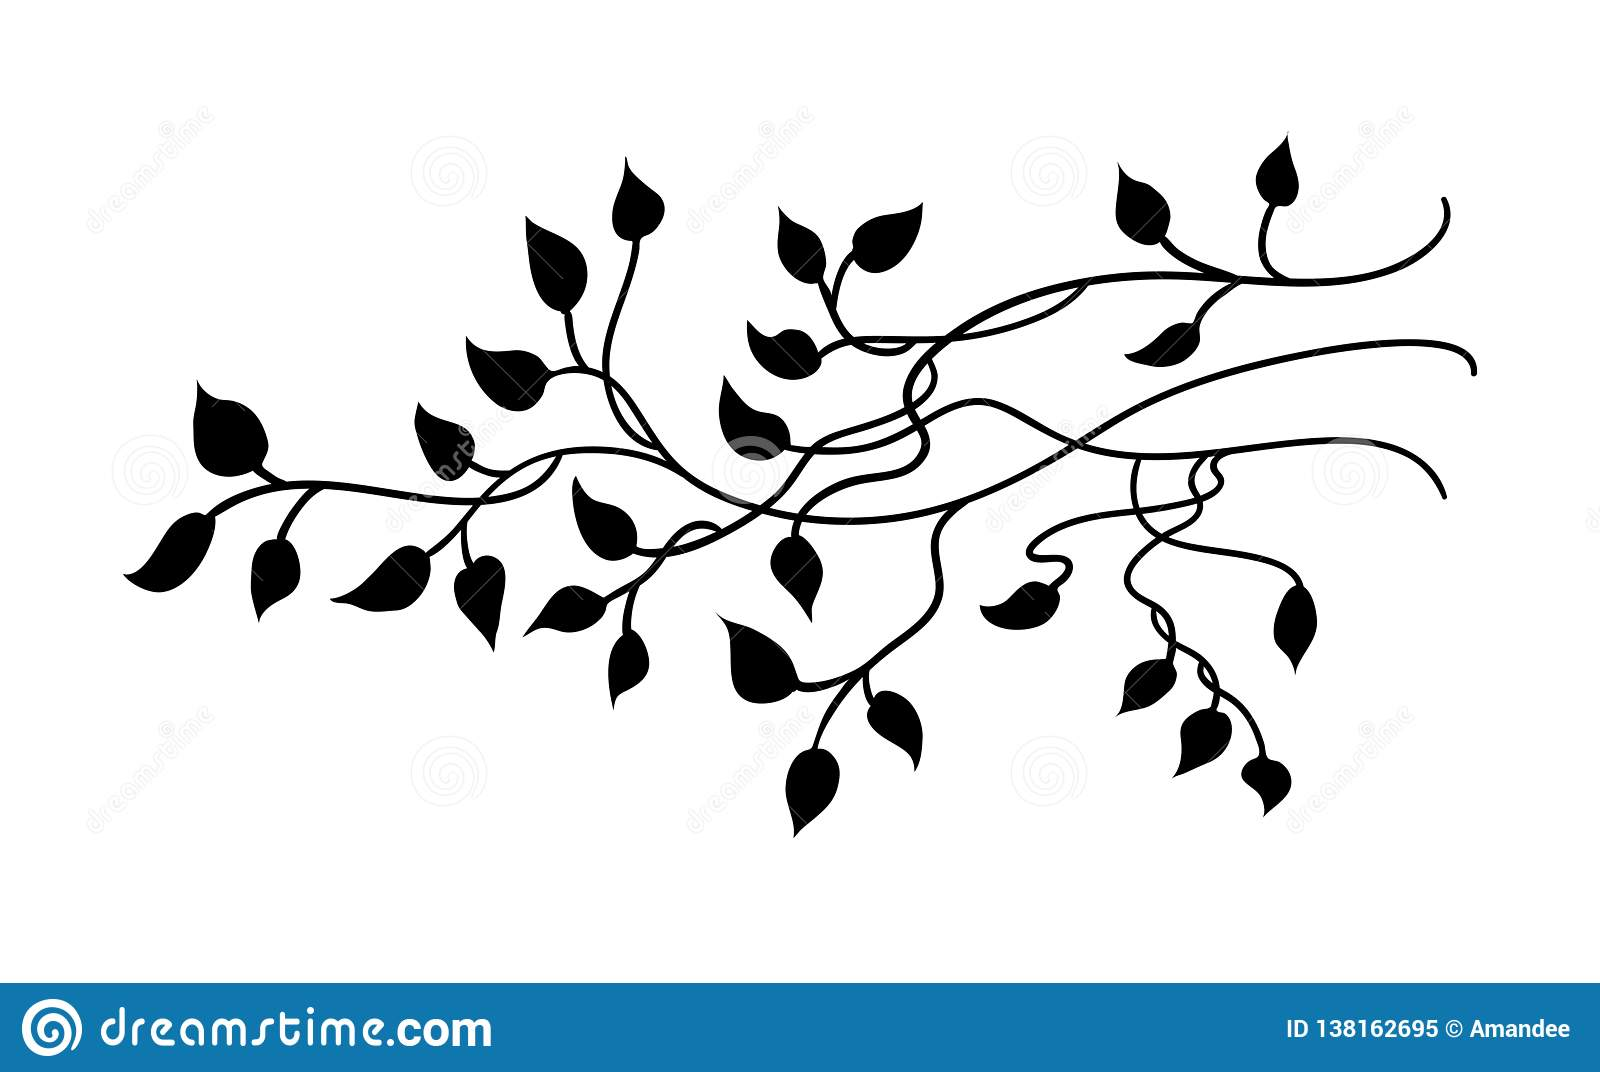 Ivy And Vines Vector With Pretty Leaves In Nature Border Design Or